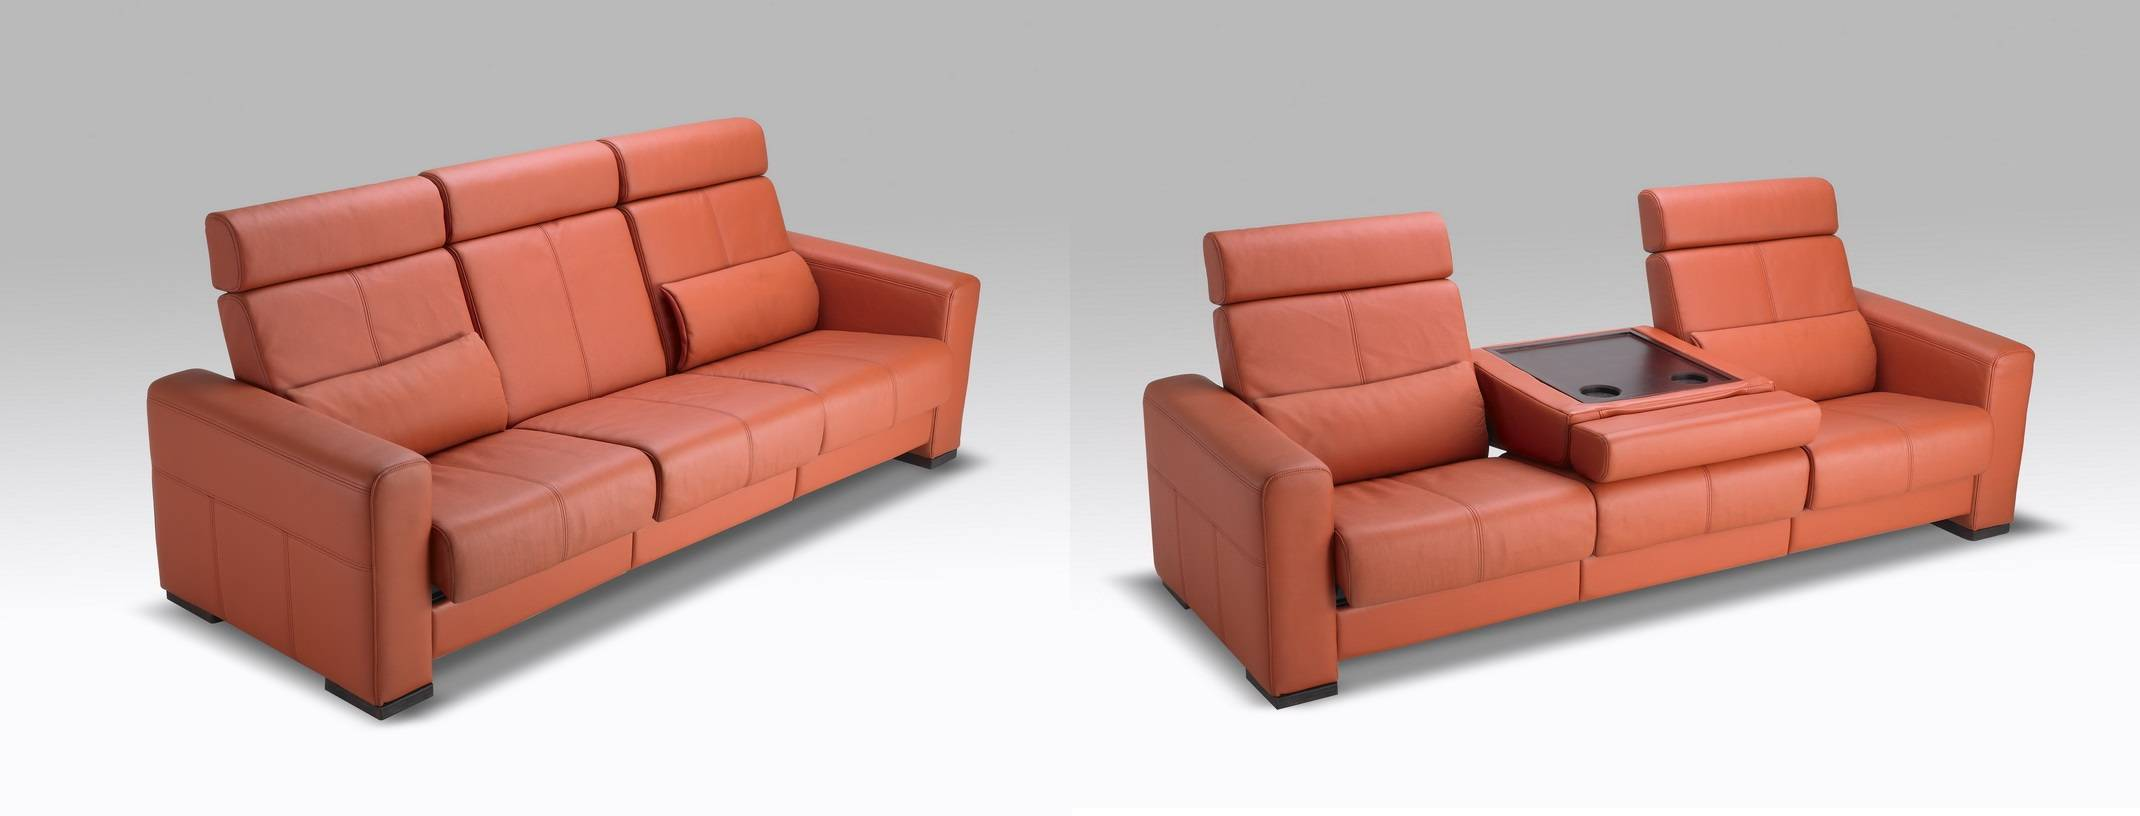 BH-861 Modern Three-Seat Sofa Sets, Home Furniture, House Furniture